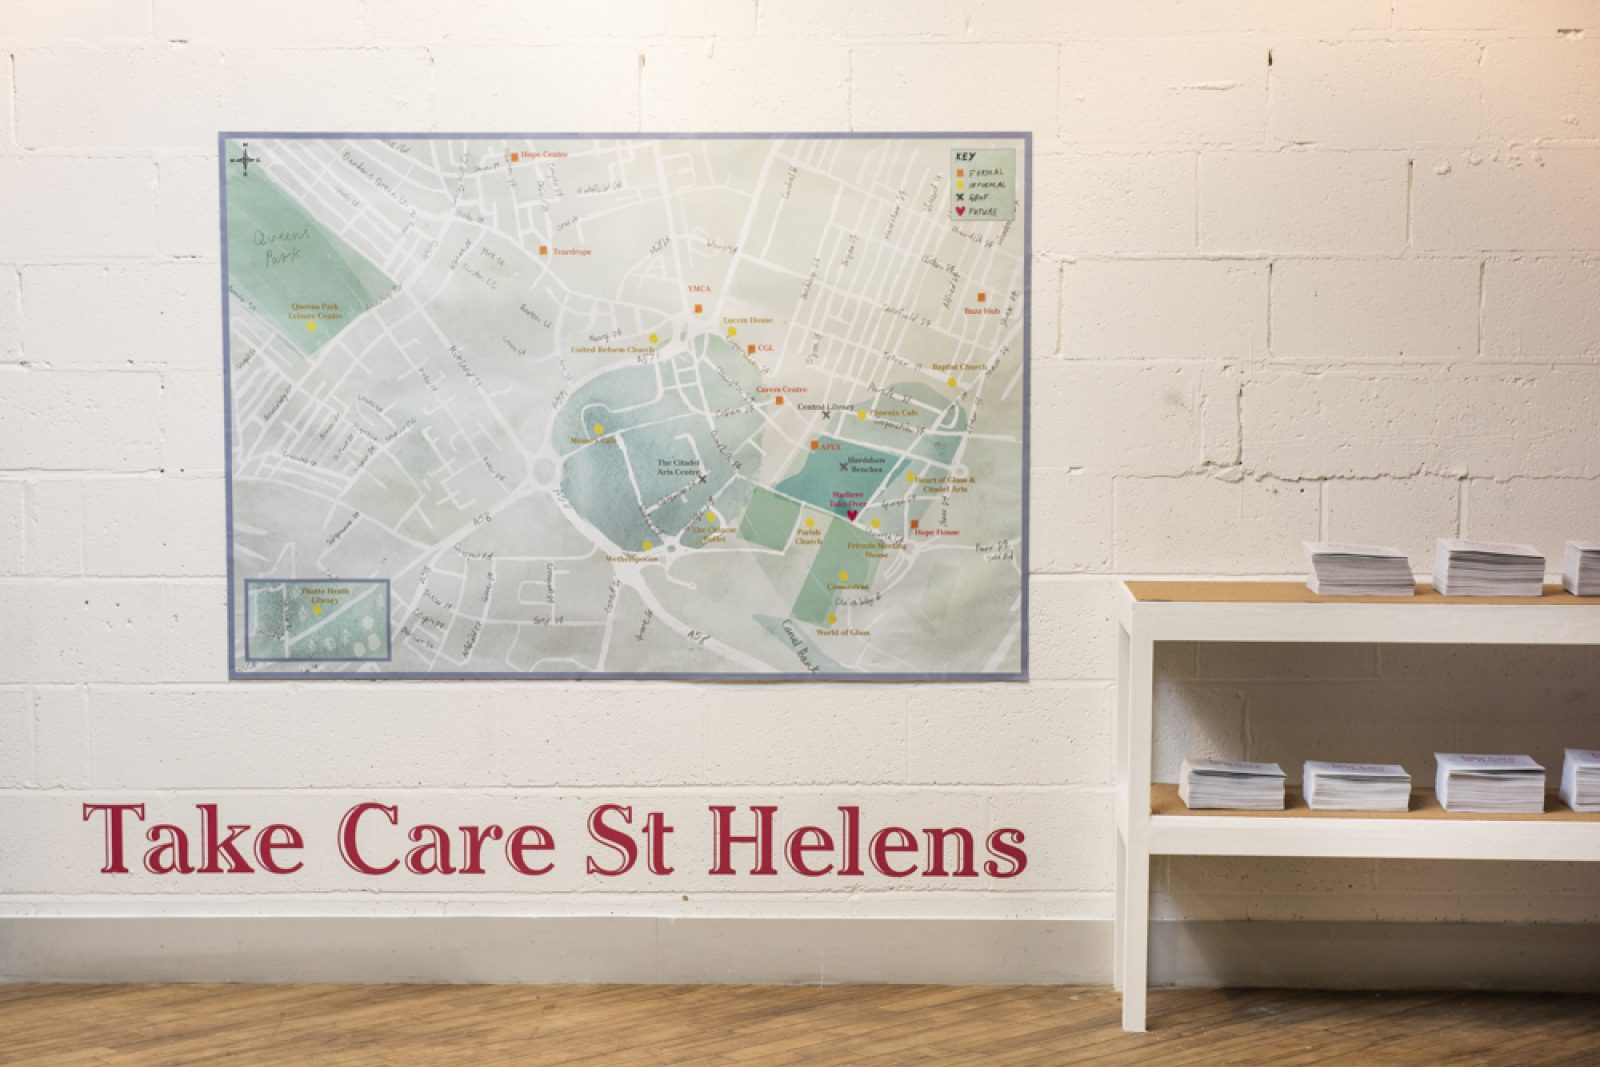 A large map hangs on a wall with a low set of shelves next to it with leaflets on top. Underneath the map the words 'Take Care St Helens' are printed in large red letters.